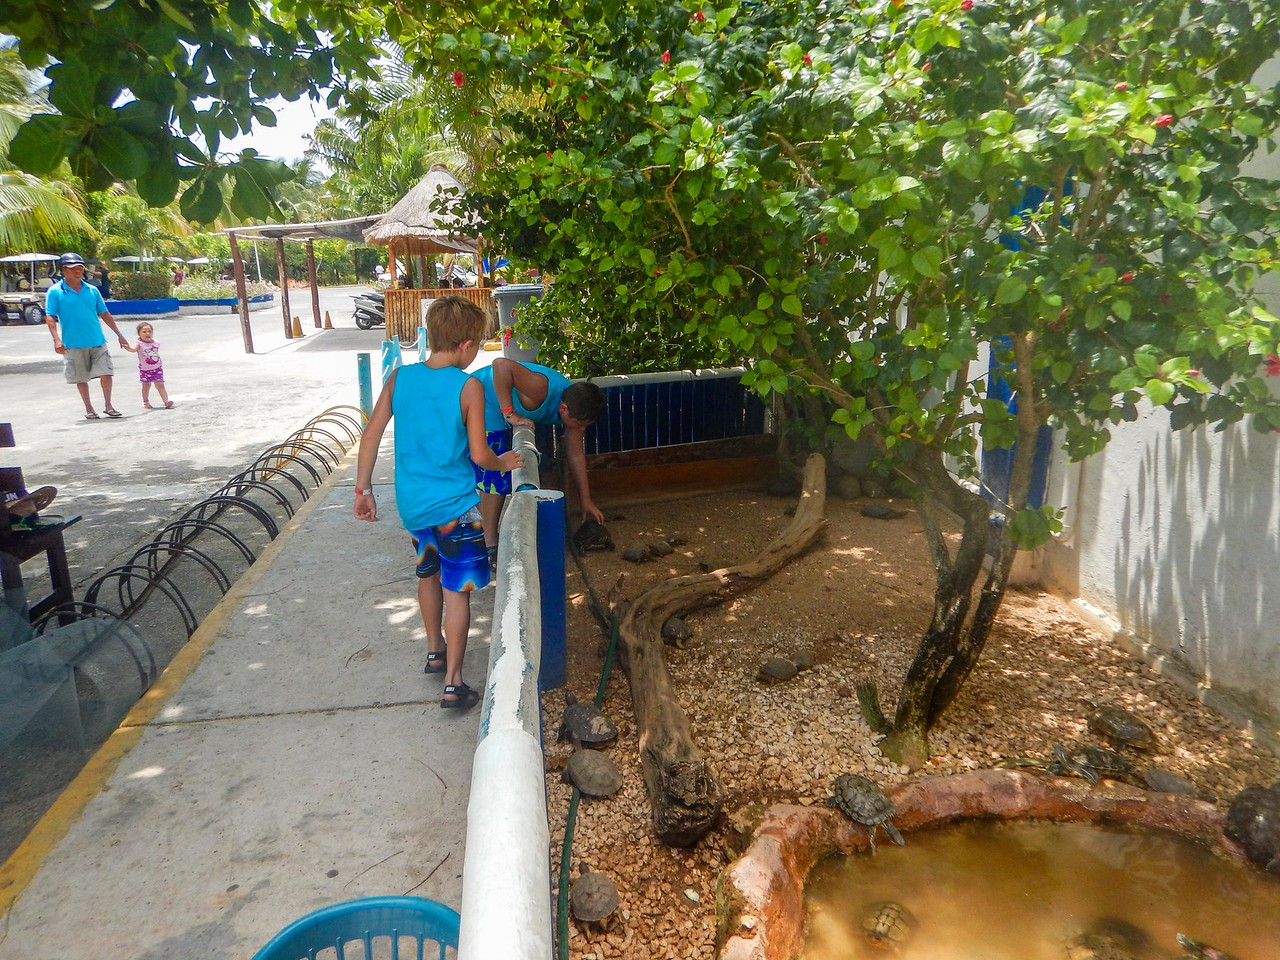 At the Turtle Farm — Tortugranja — to see their conservation work and visit with the turtles.  Traveling with my aunt and nephews in Isla Mujeres, Mexico.